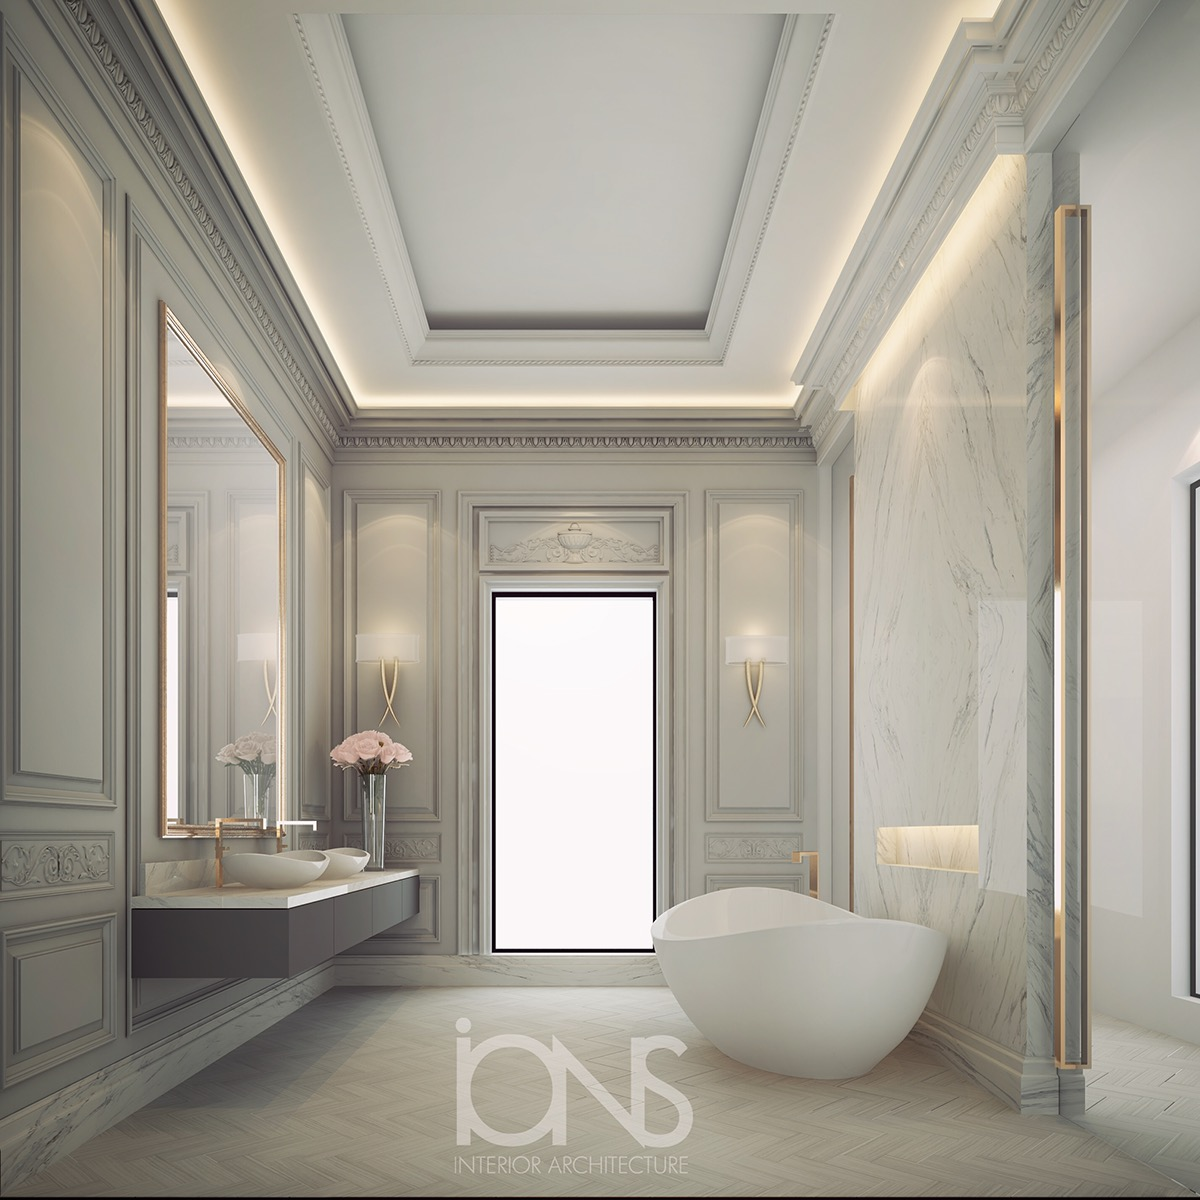 Elegant Bathrooms: Minimalist And Elegant Bathroom Design On Behance